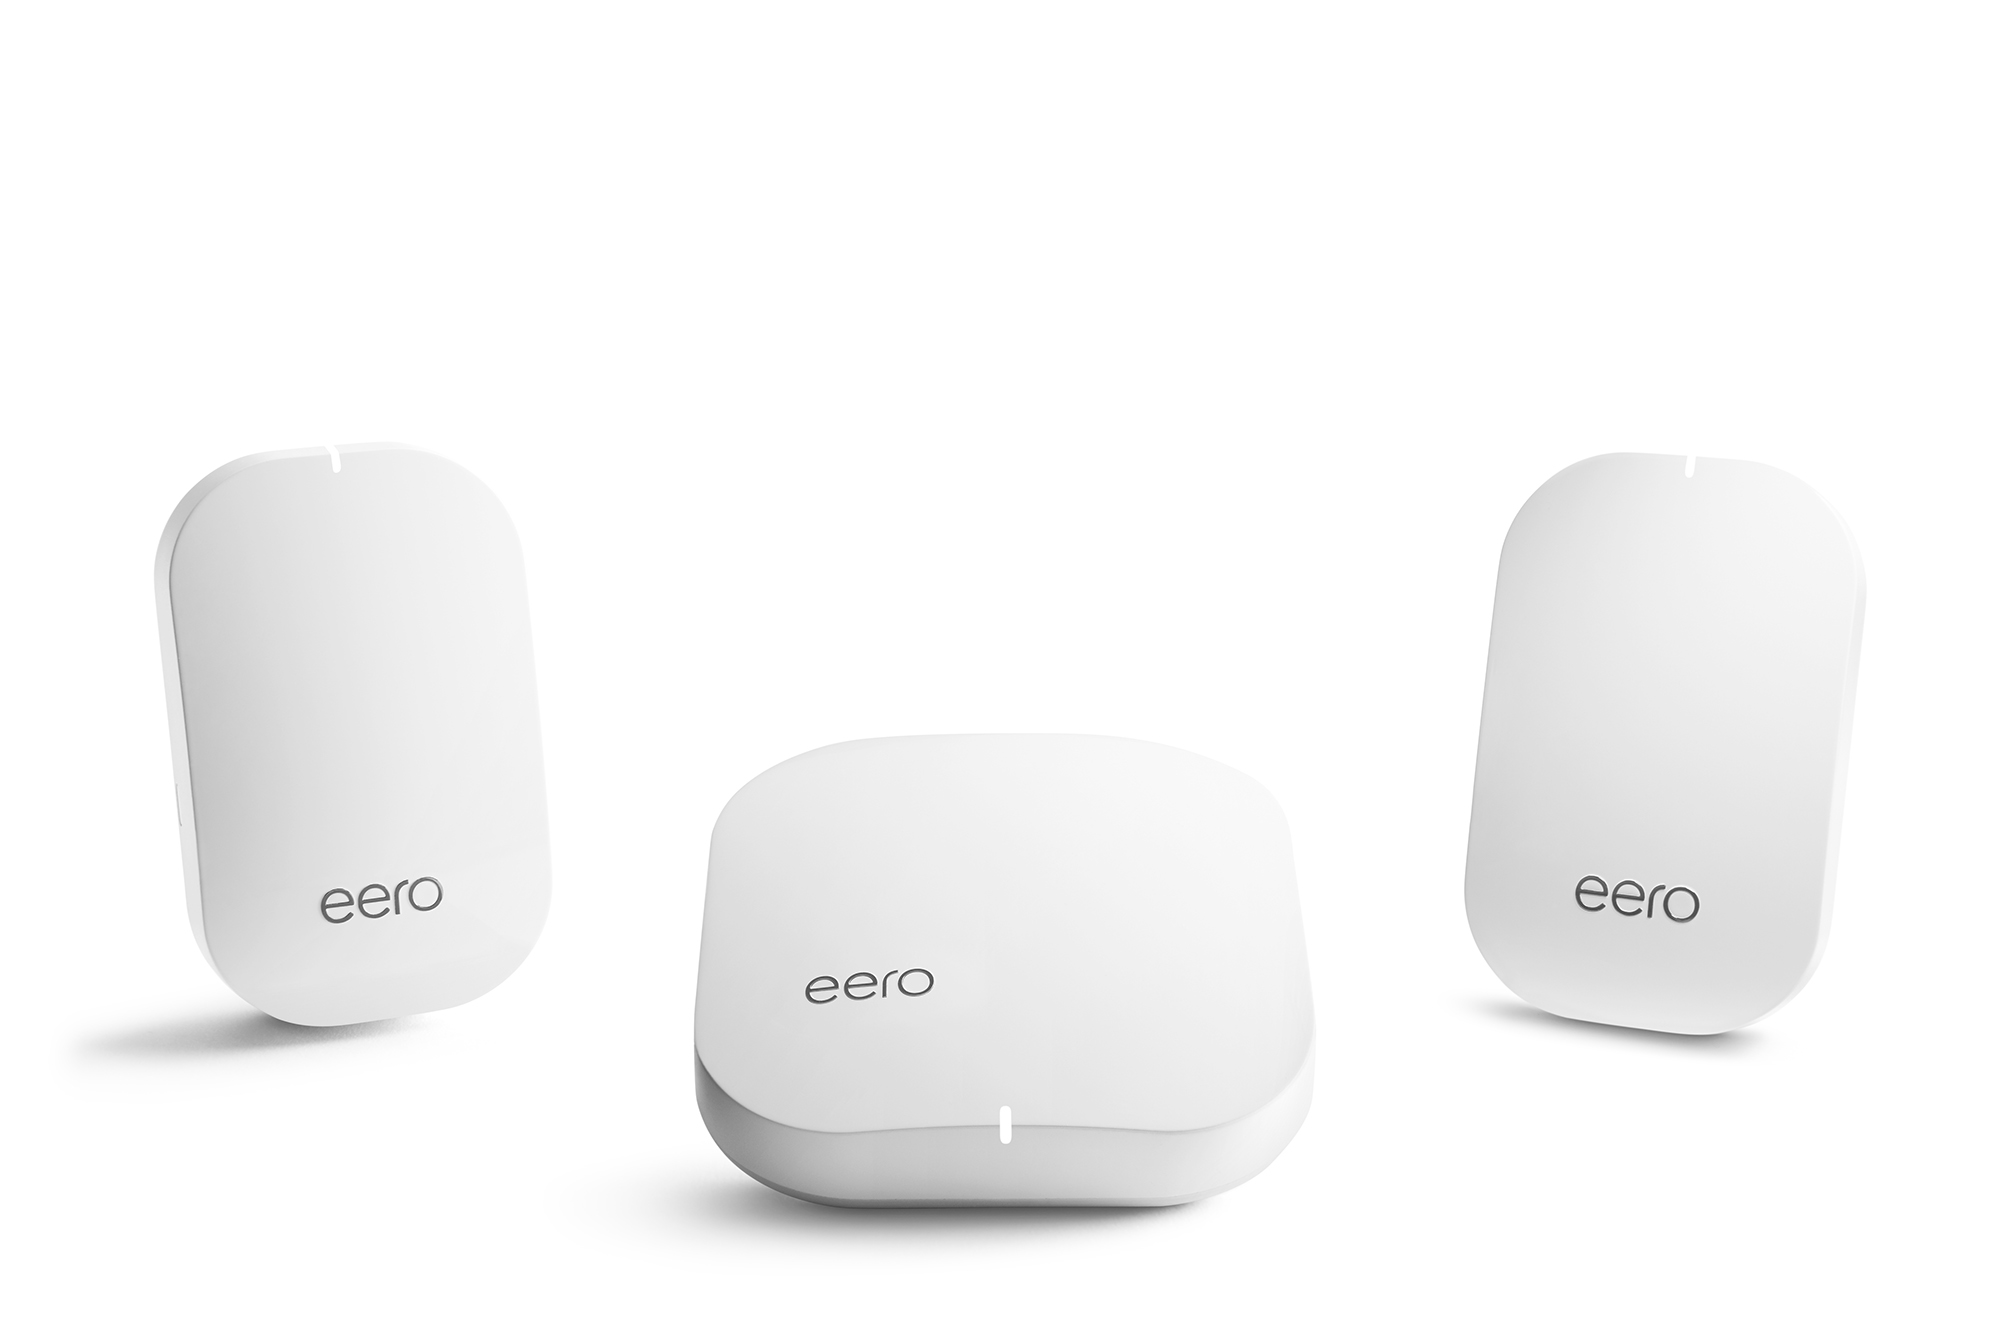 Whats The Difference Between Eero Beacon Help Center Wiring Multiple Ethernet Switches Unico And Piccino White Double V2